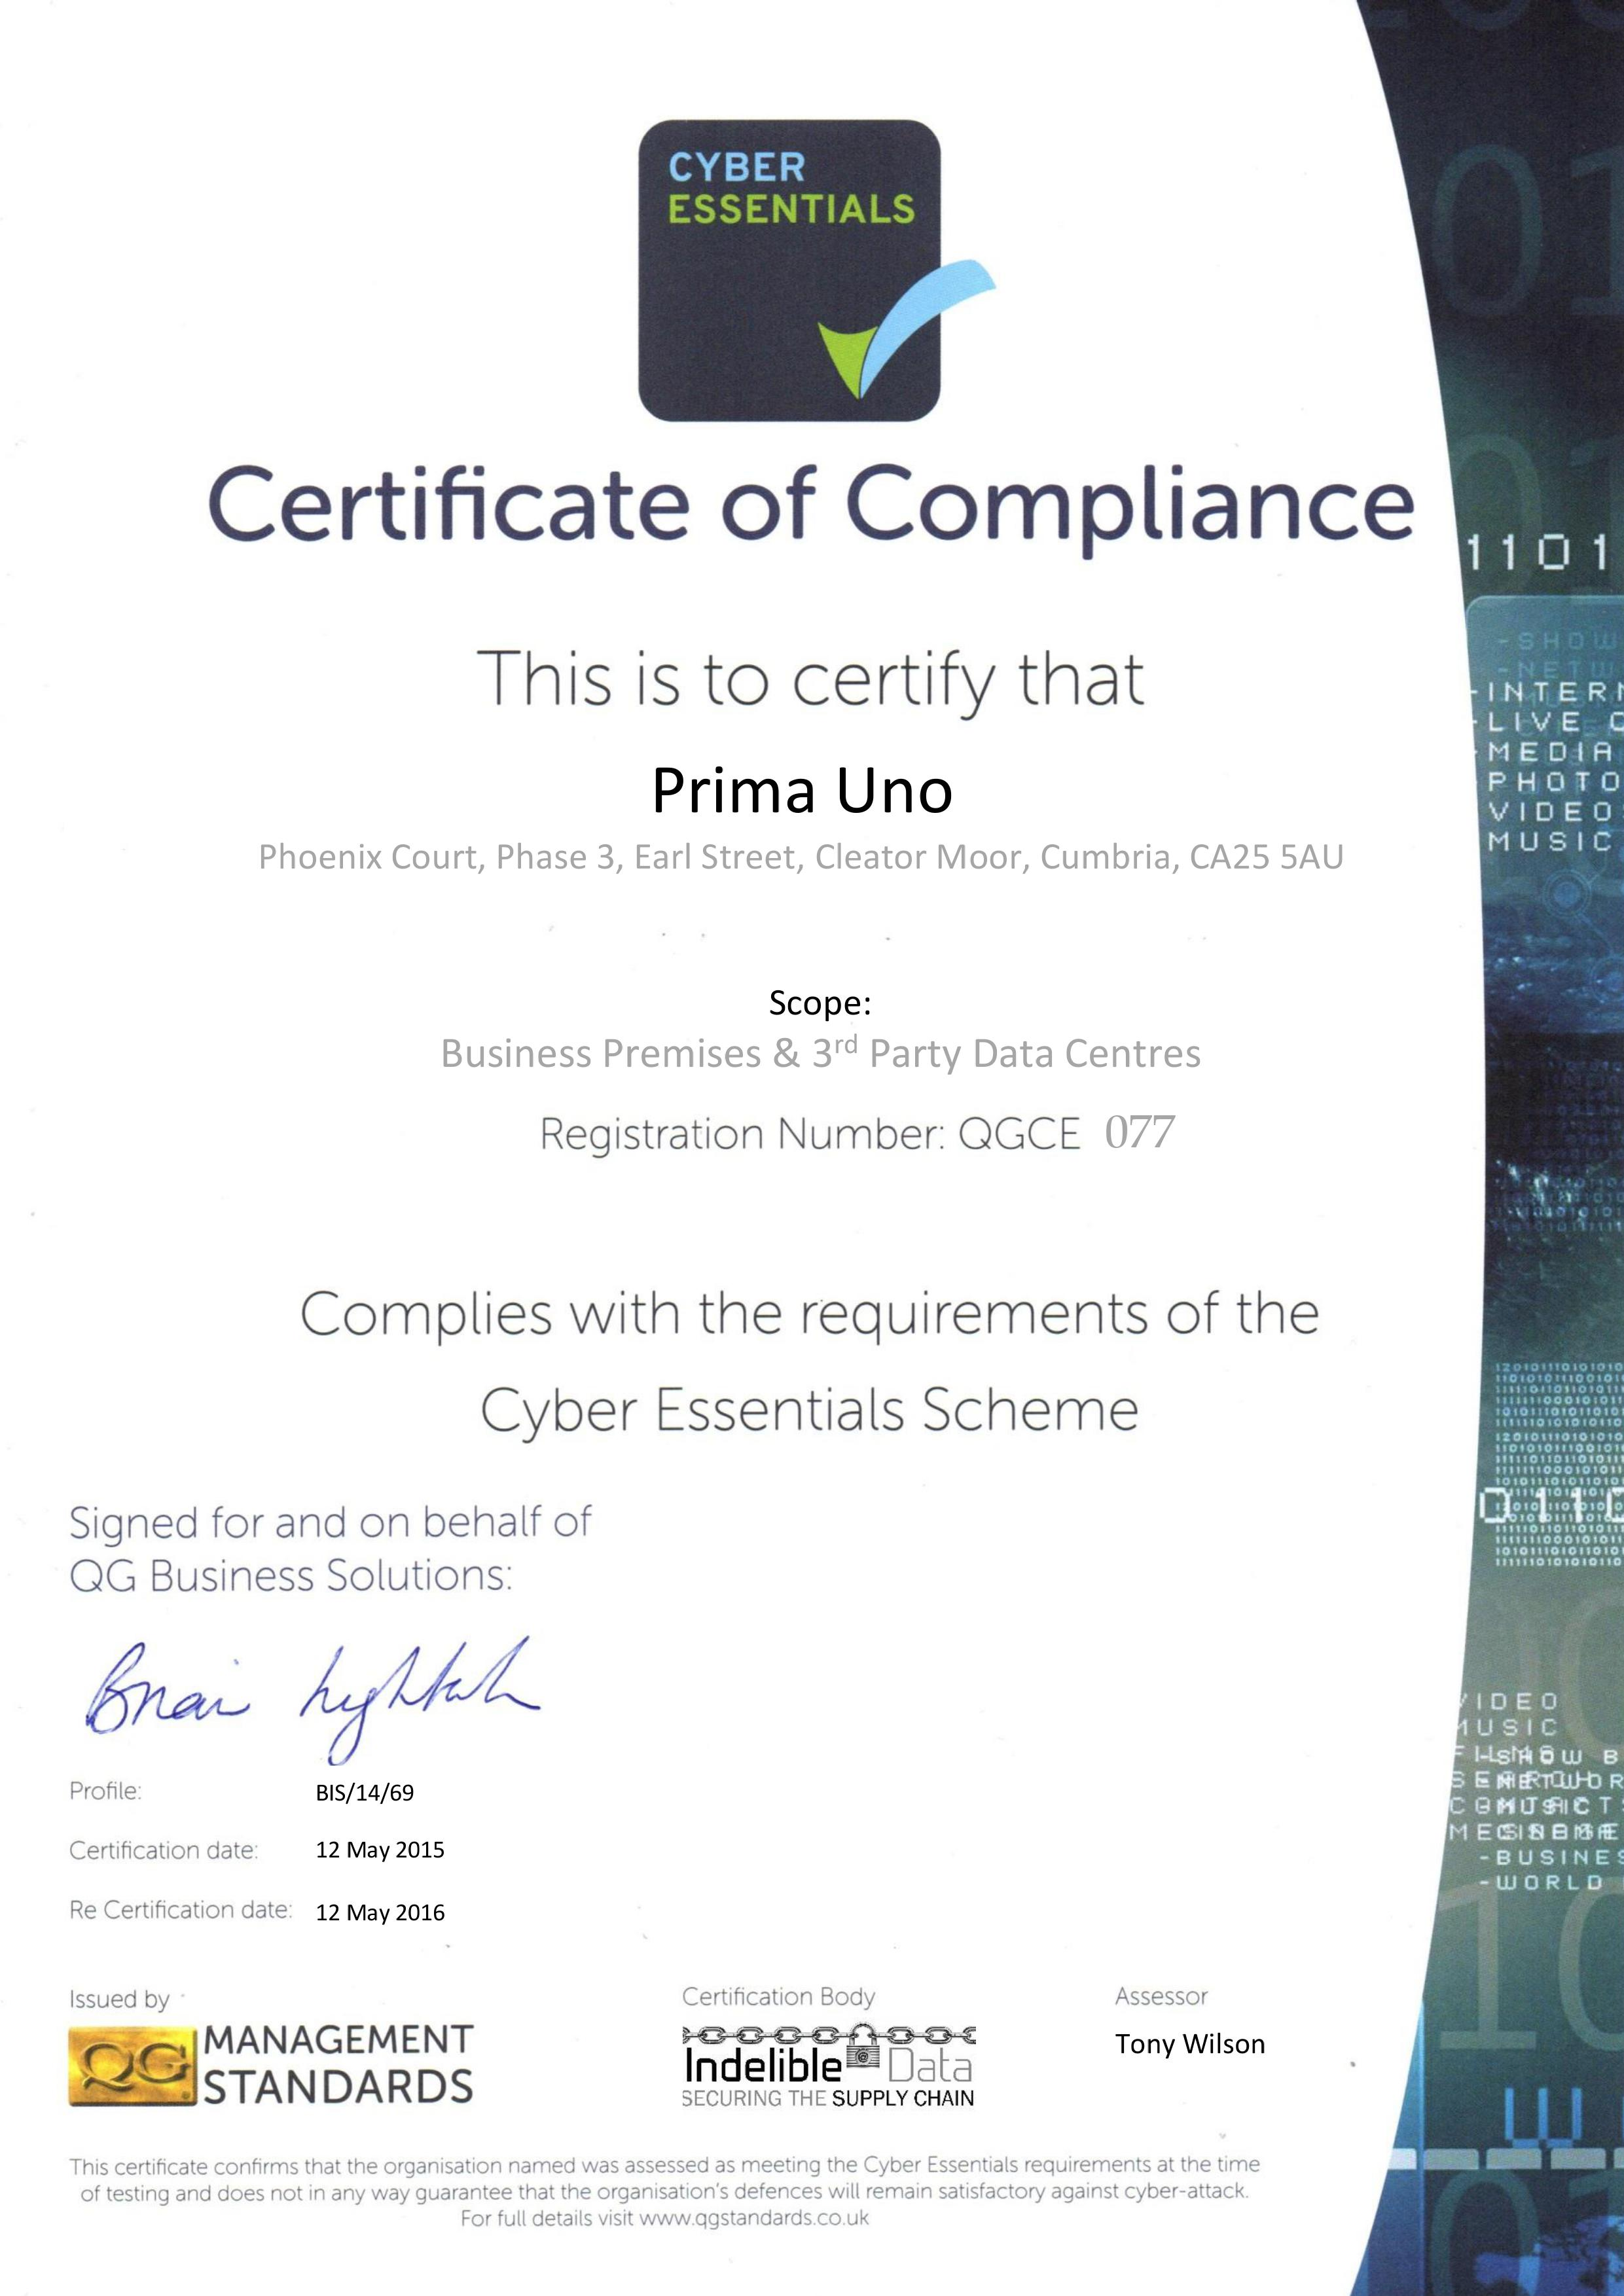 Cyber Security Certificate 2015